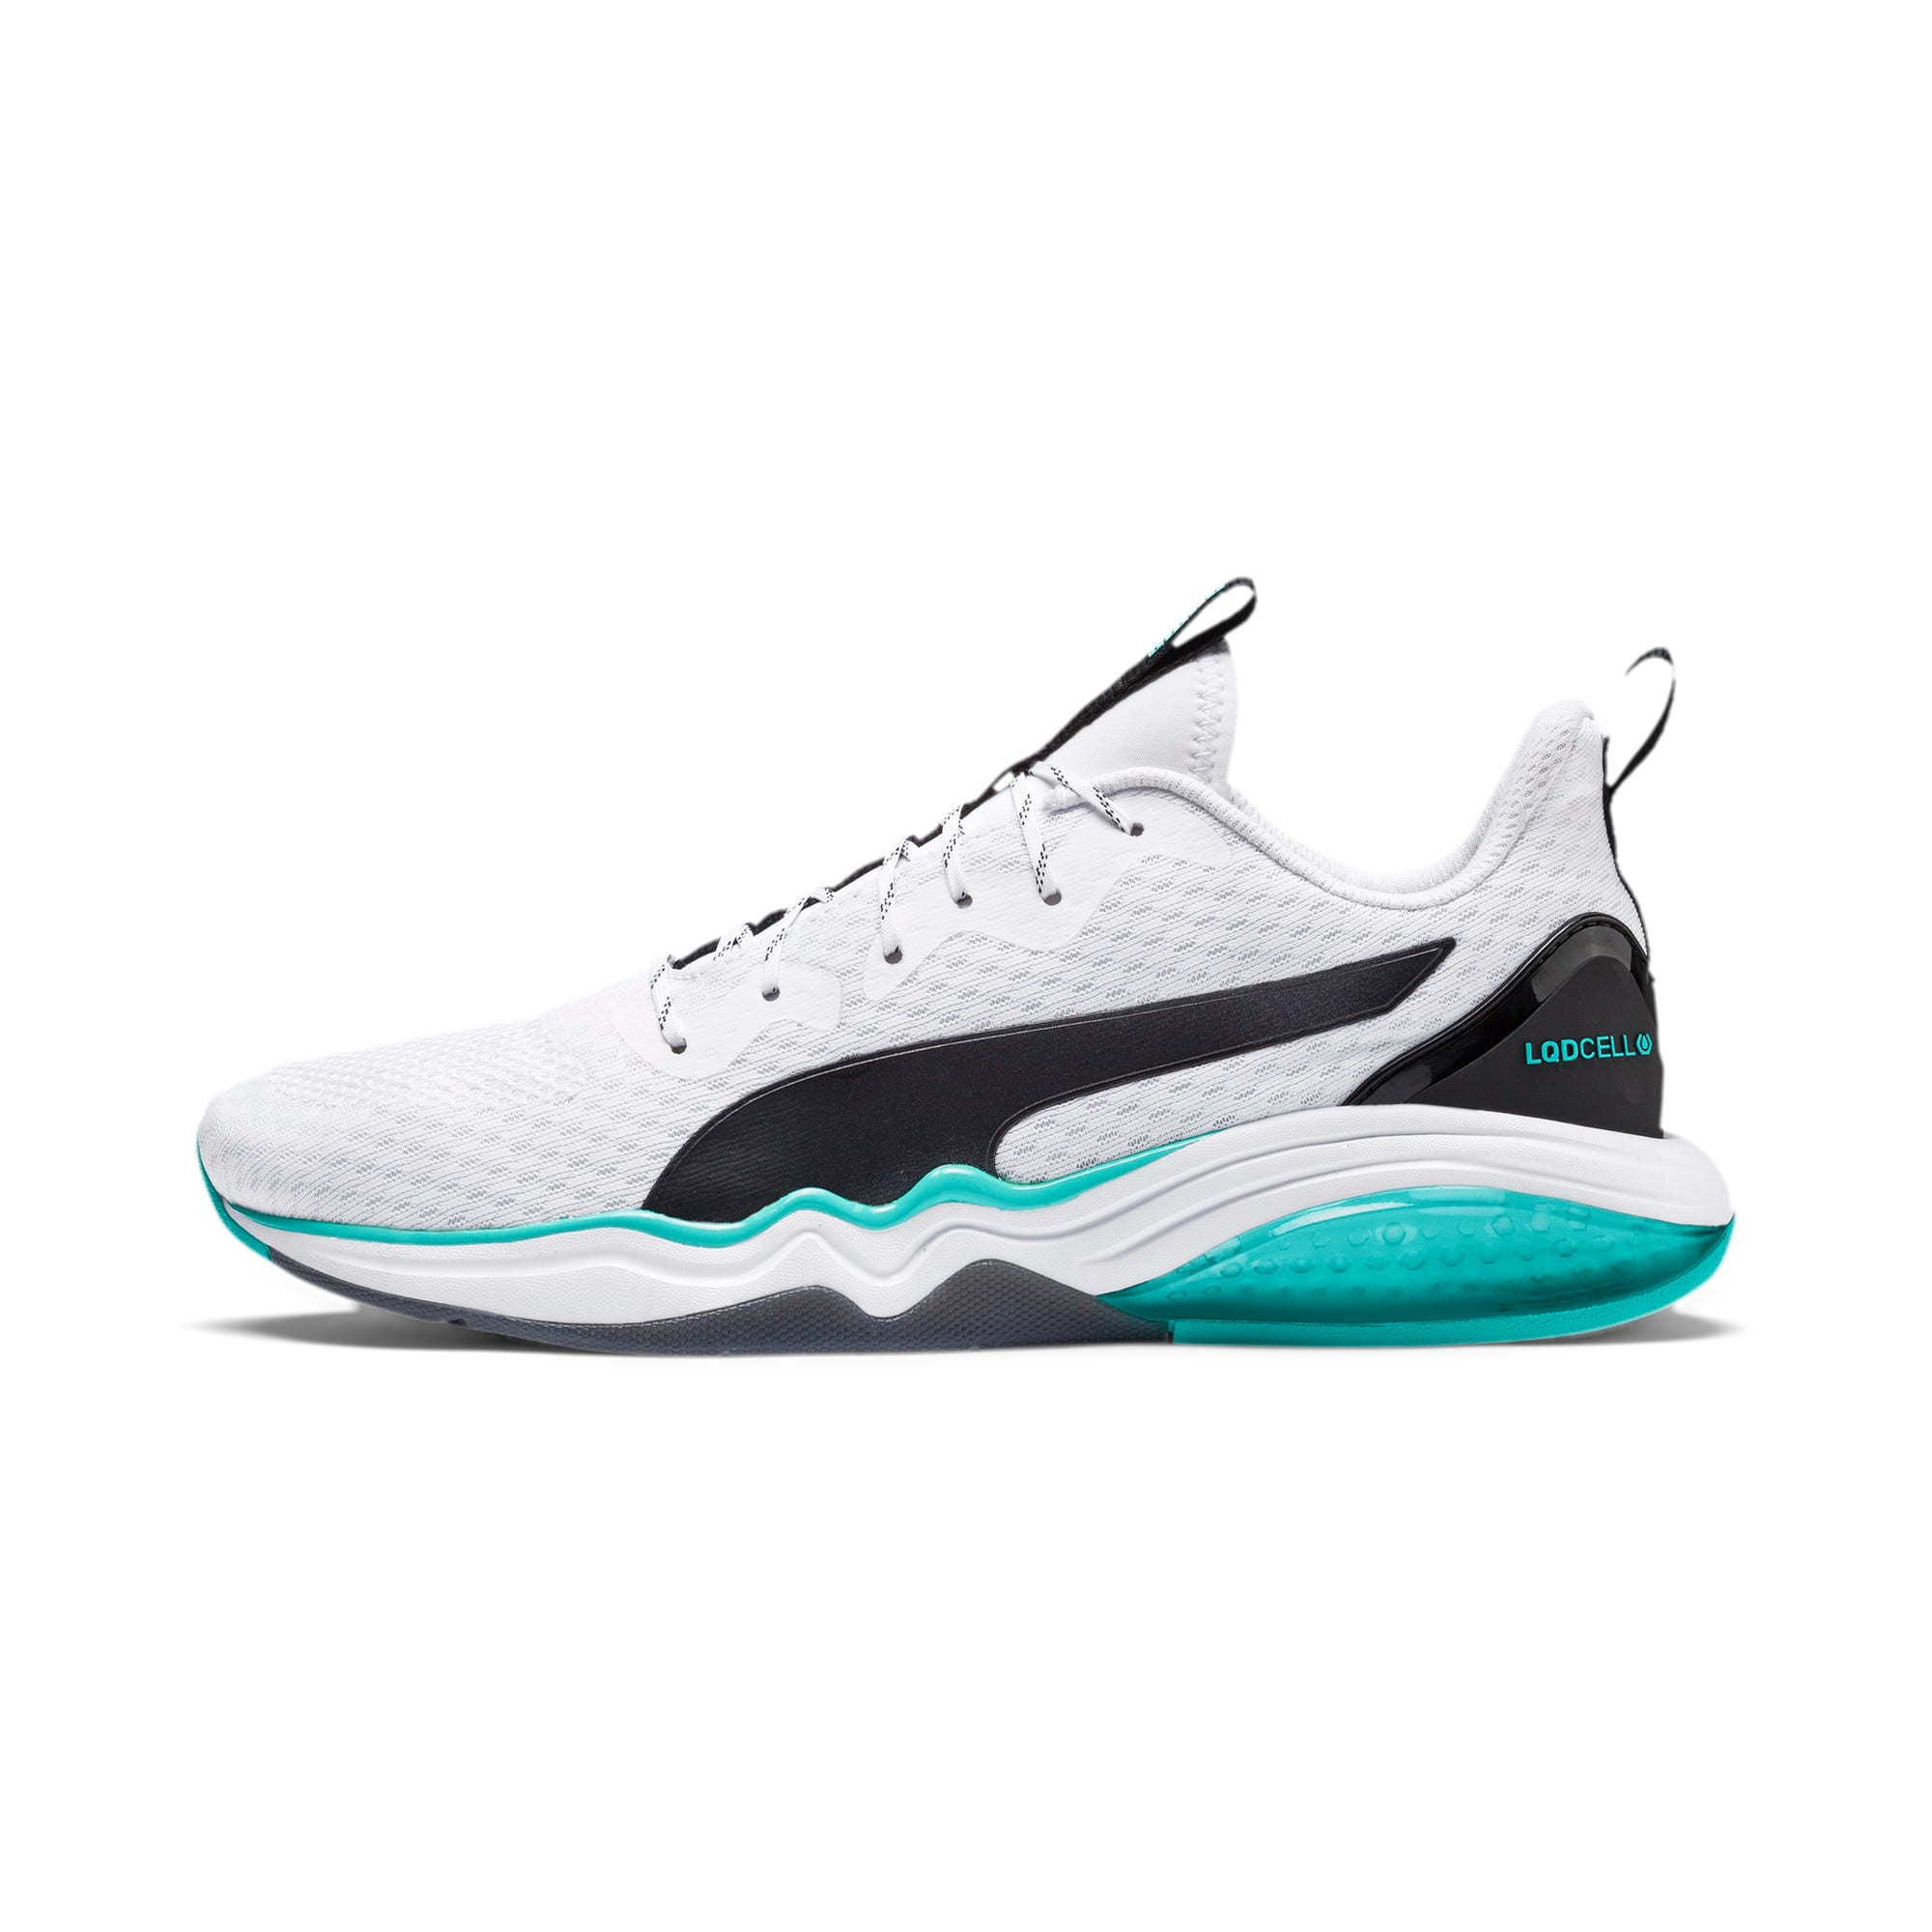 Thumbnail 1 of LQDCELL Tension Men's Training Shoes, Puma White-Blue Turquoise, medium